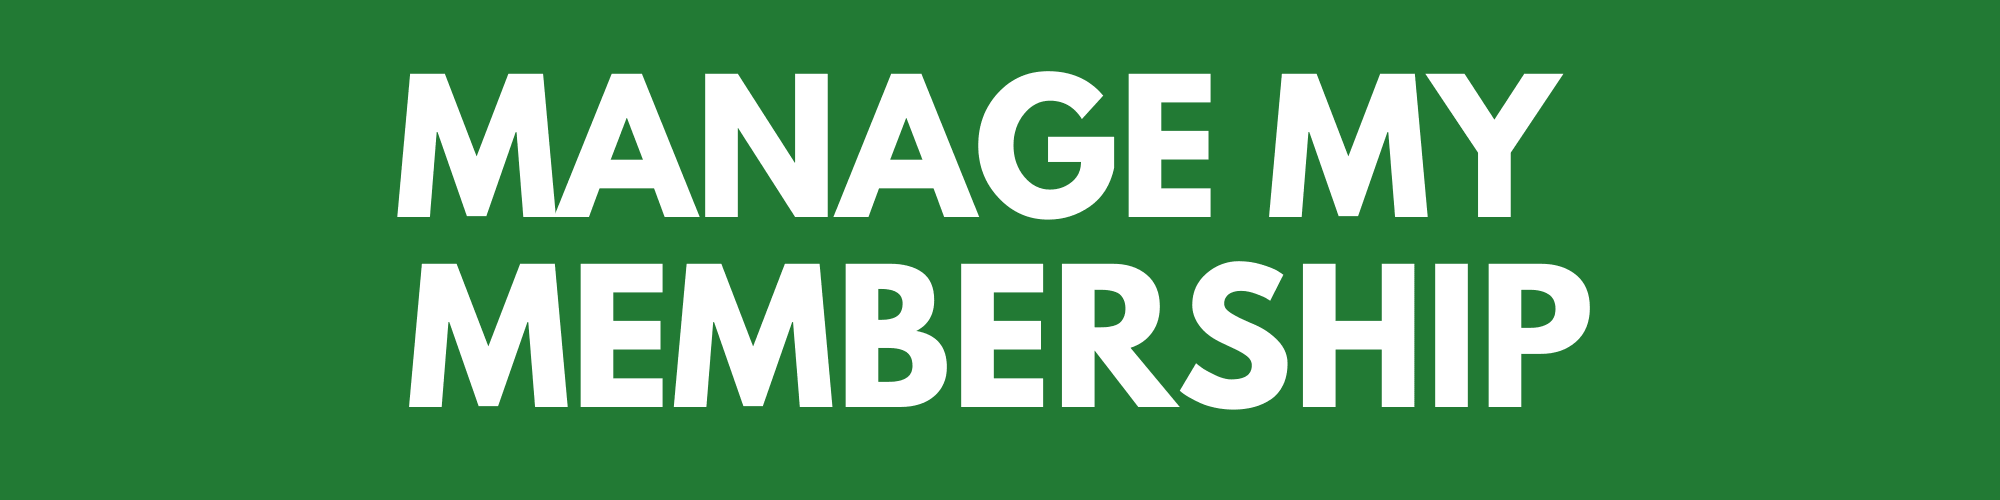 Manage My Membership - Click here to manage changes